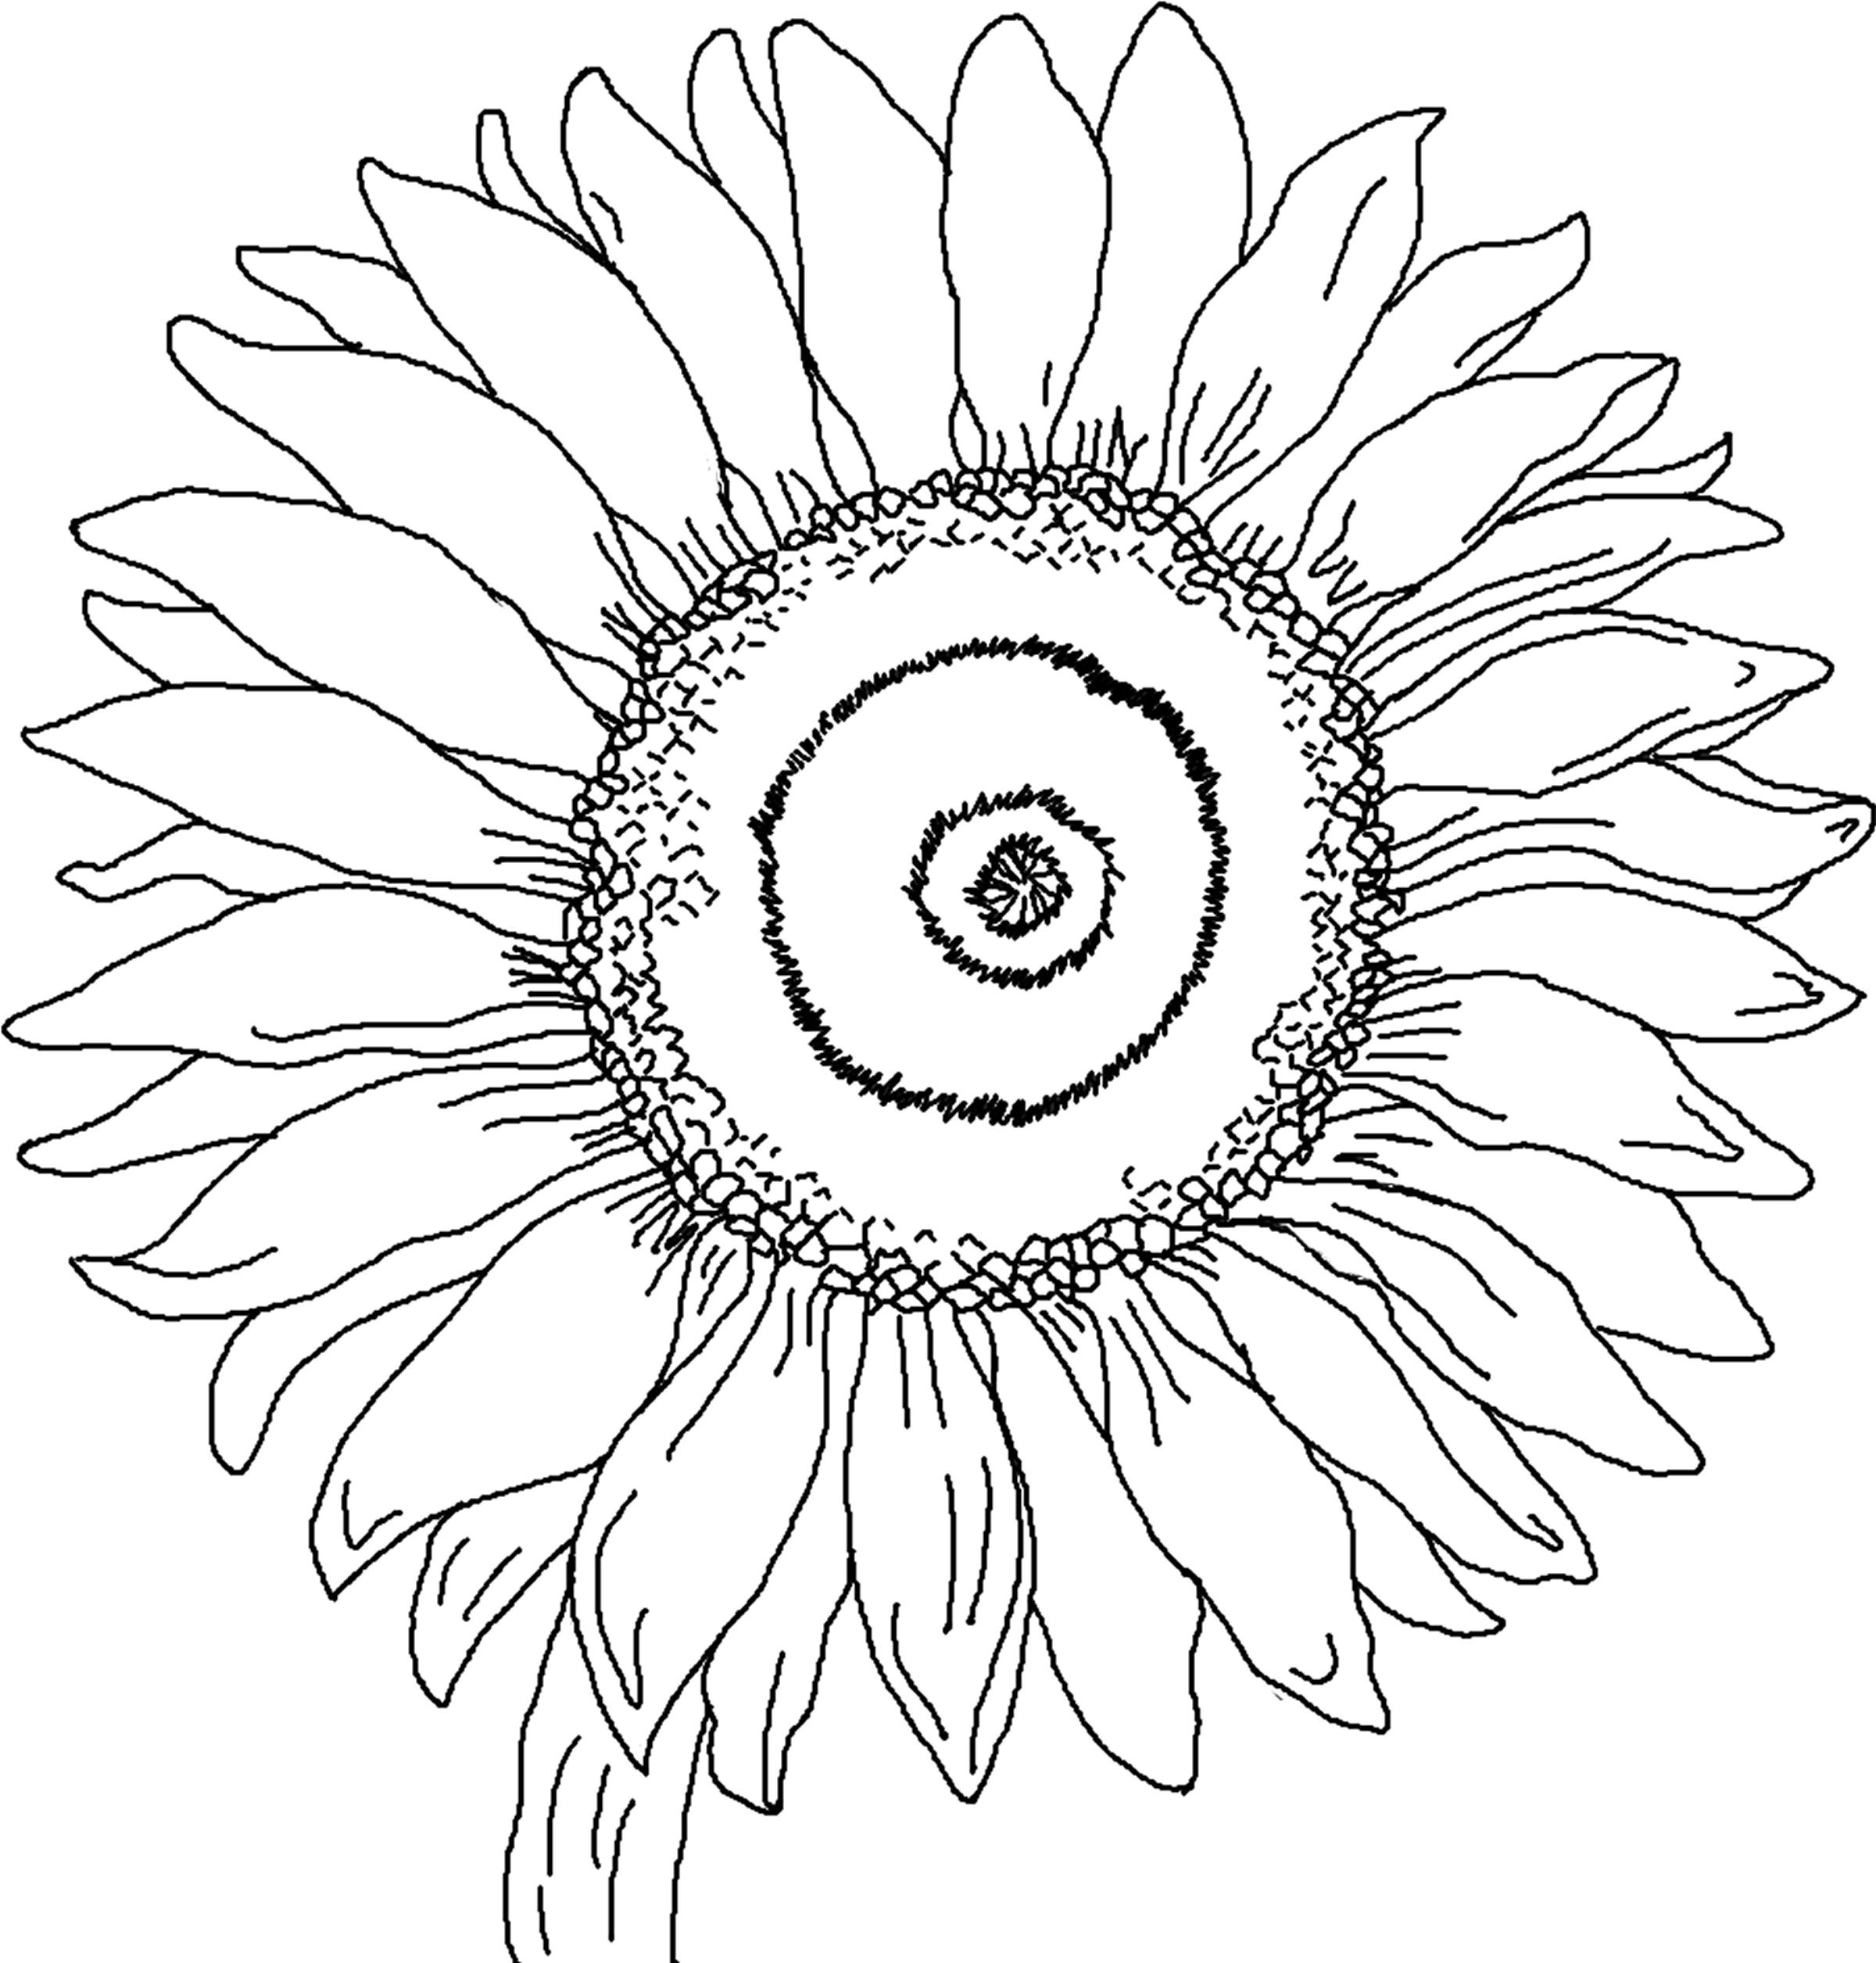 sunflower coloring sheets sunflower is blooming coloring page download print coloring sunflower sheets